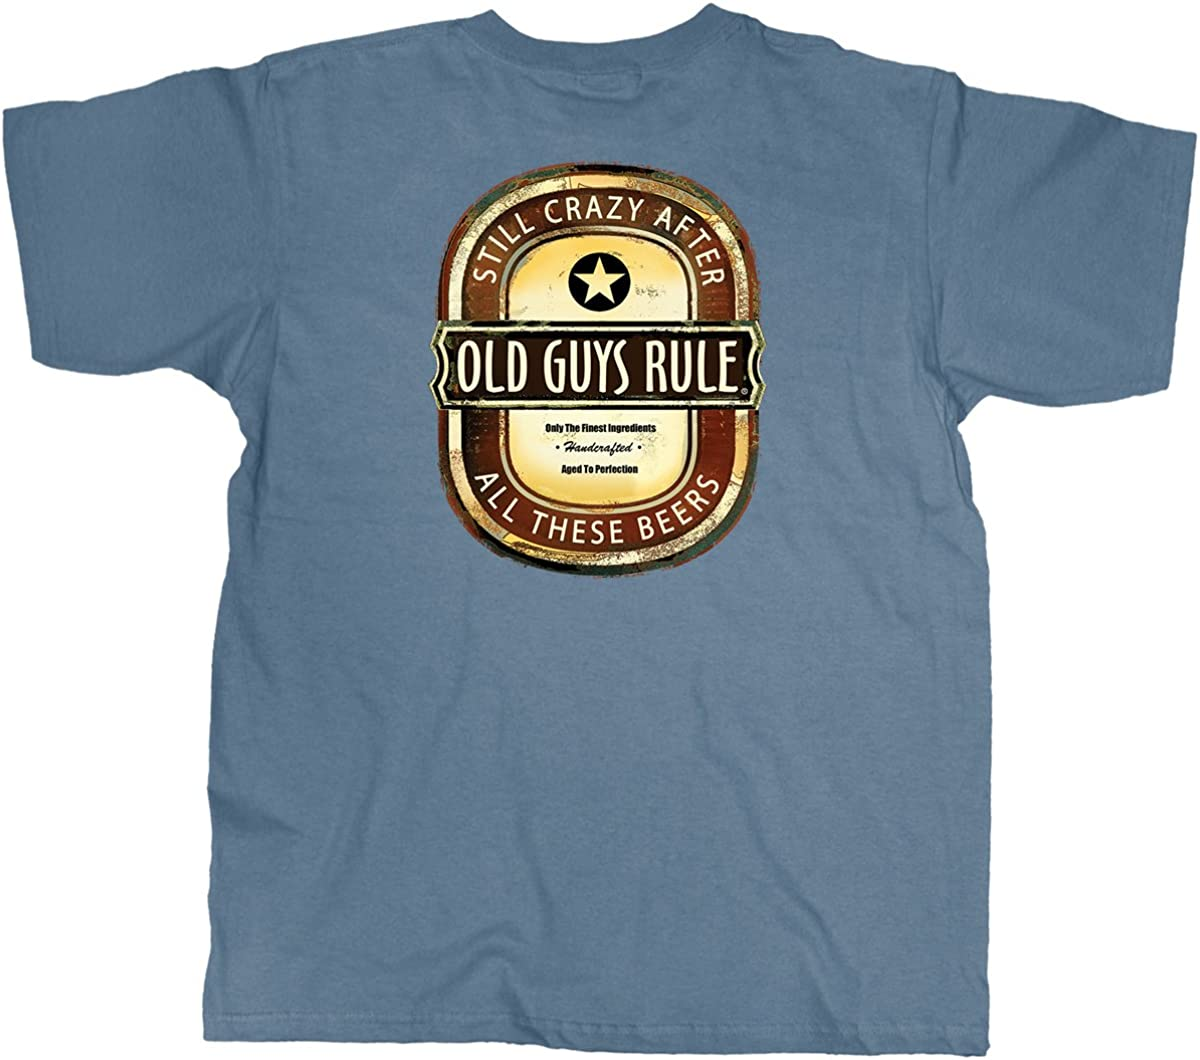 OLD GUYS RULE T Shirt for Men | Crazy Brew | Lake Blue